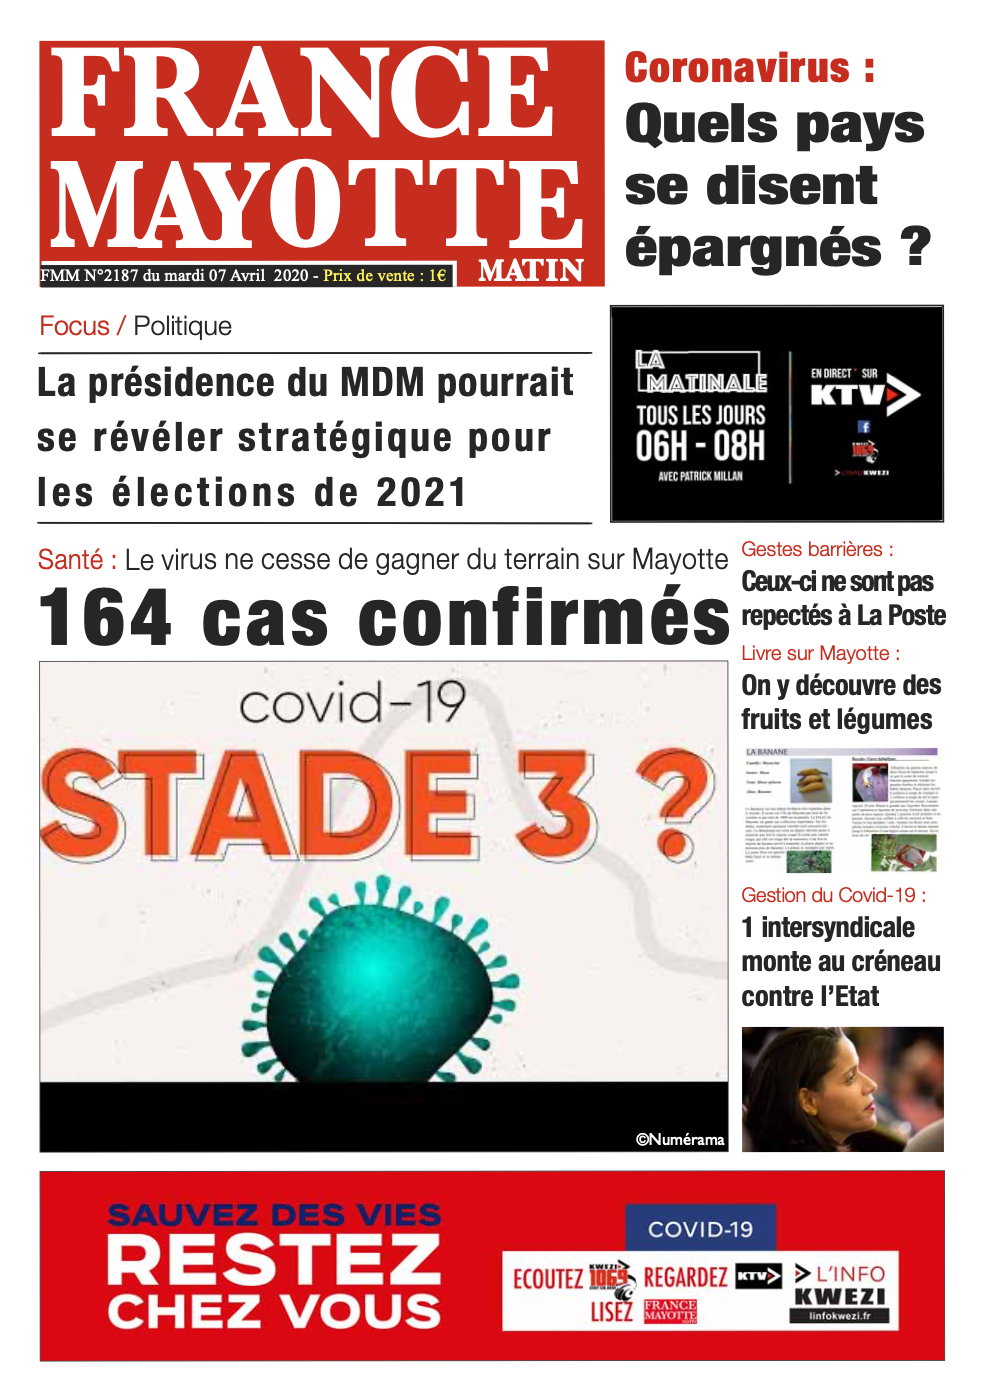 France Mayotte Mardi 7 avril 2020